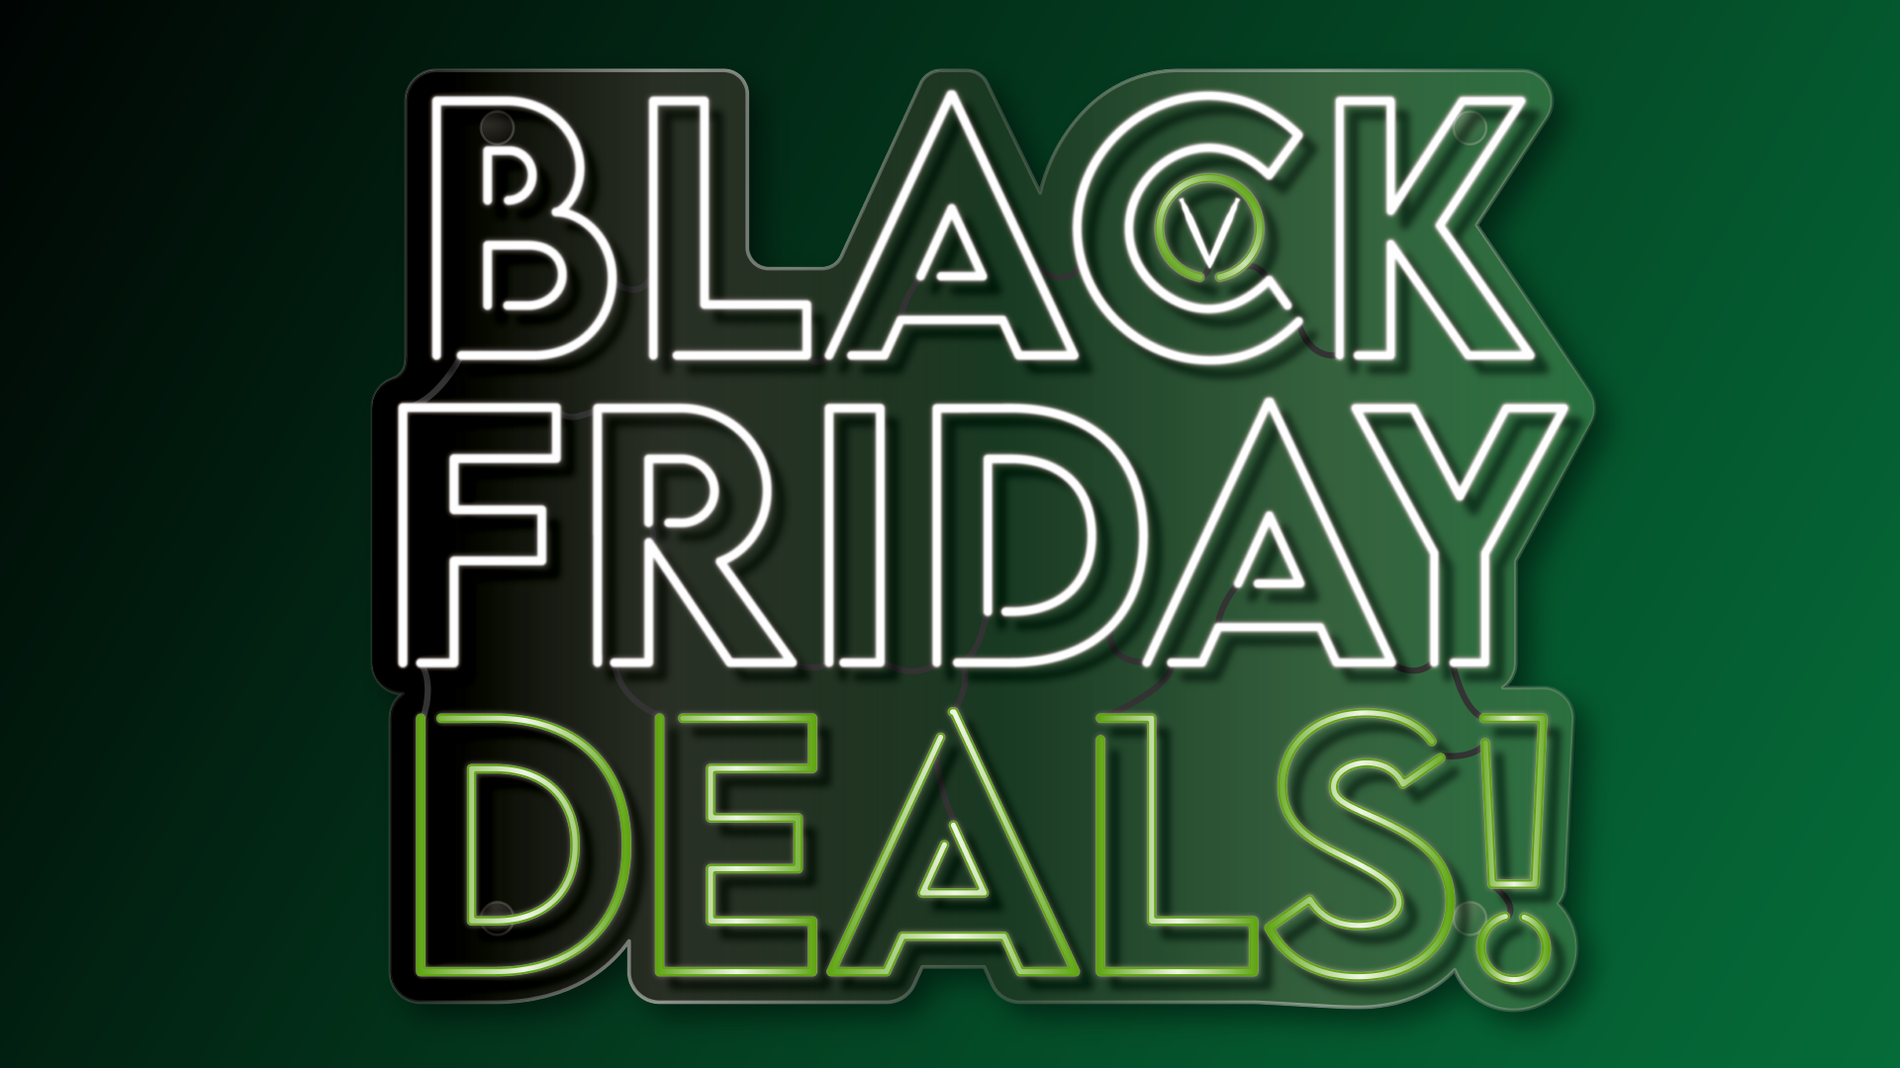 Vape sale, black friday vape sale, discount ecigs, cheap vape, cheap ecigarettes, best vape deals, Black Friday UK, Black Friday Vape Deals, Black Friday Vape Shop, Online Vape Store, Vape shop near me